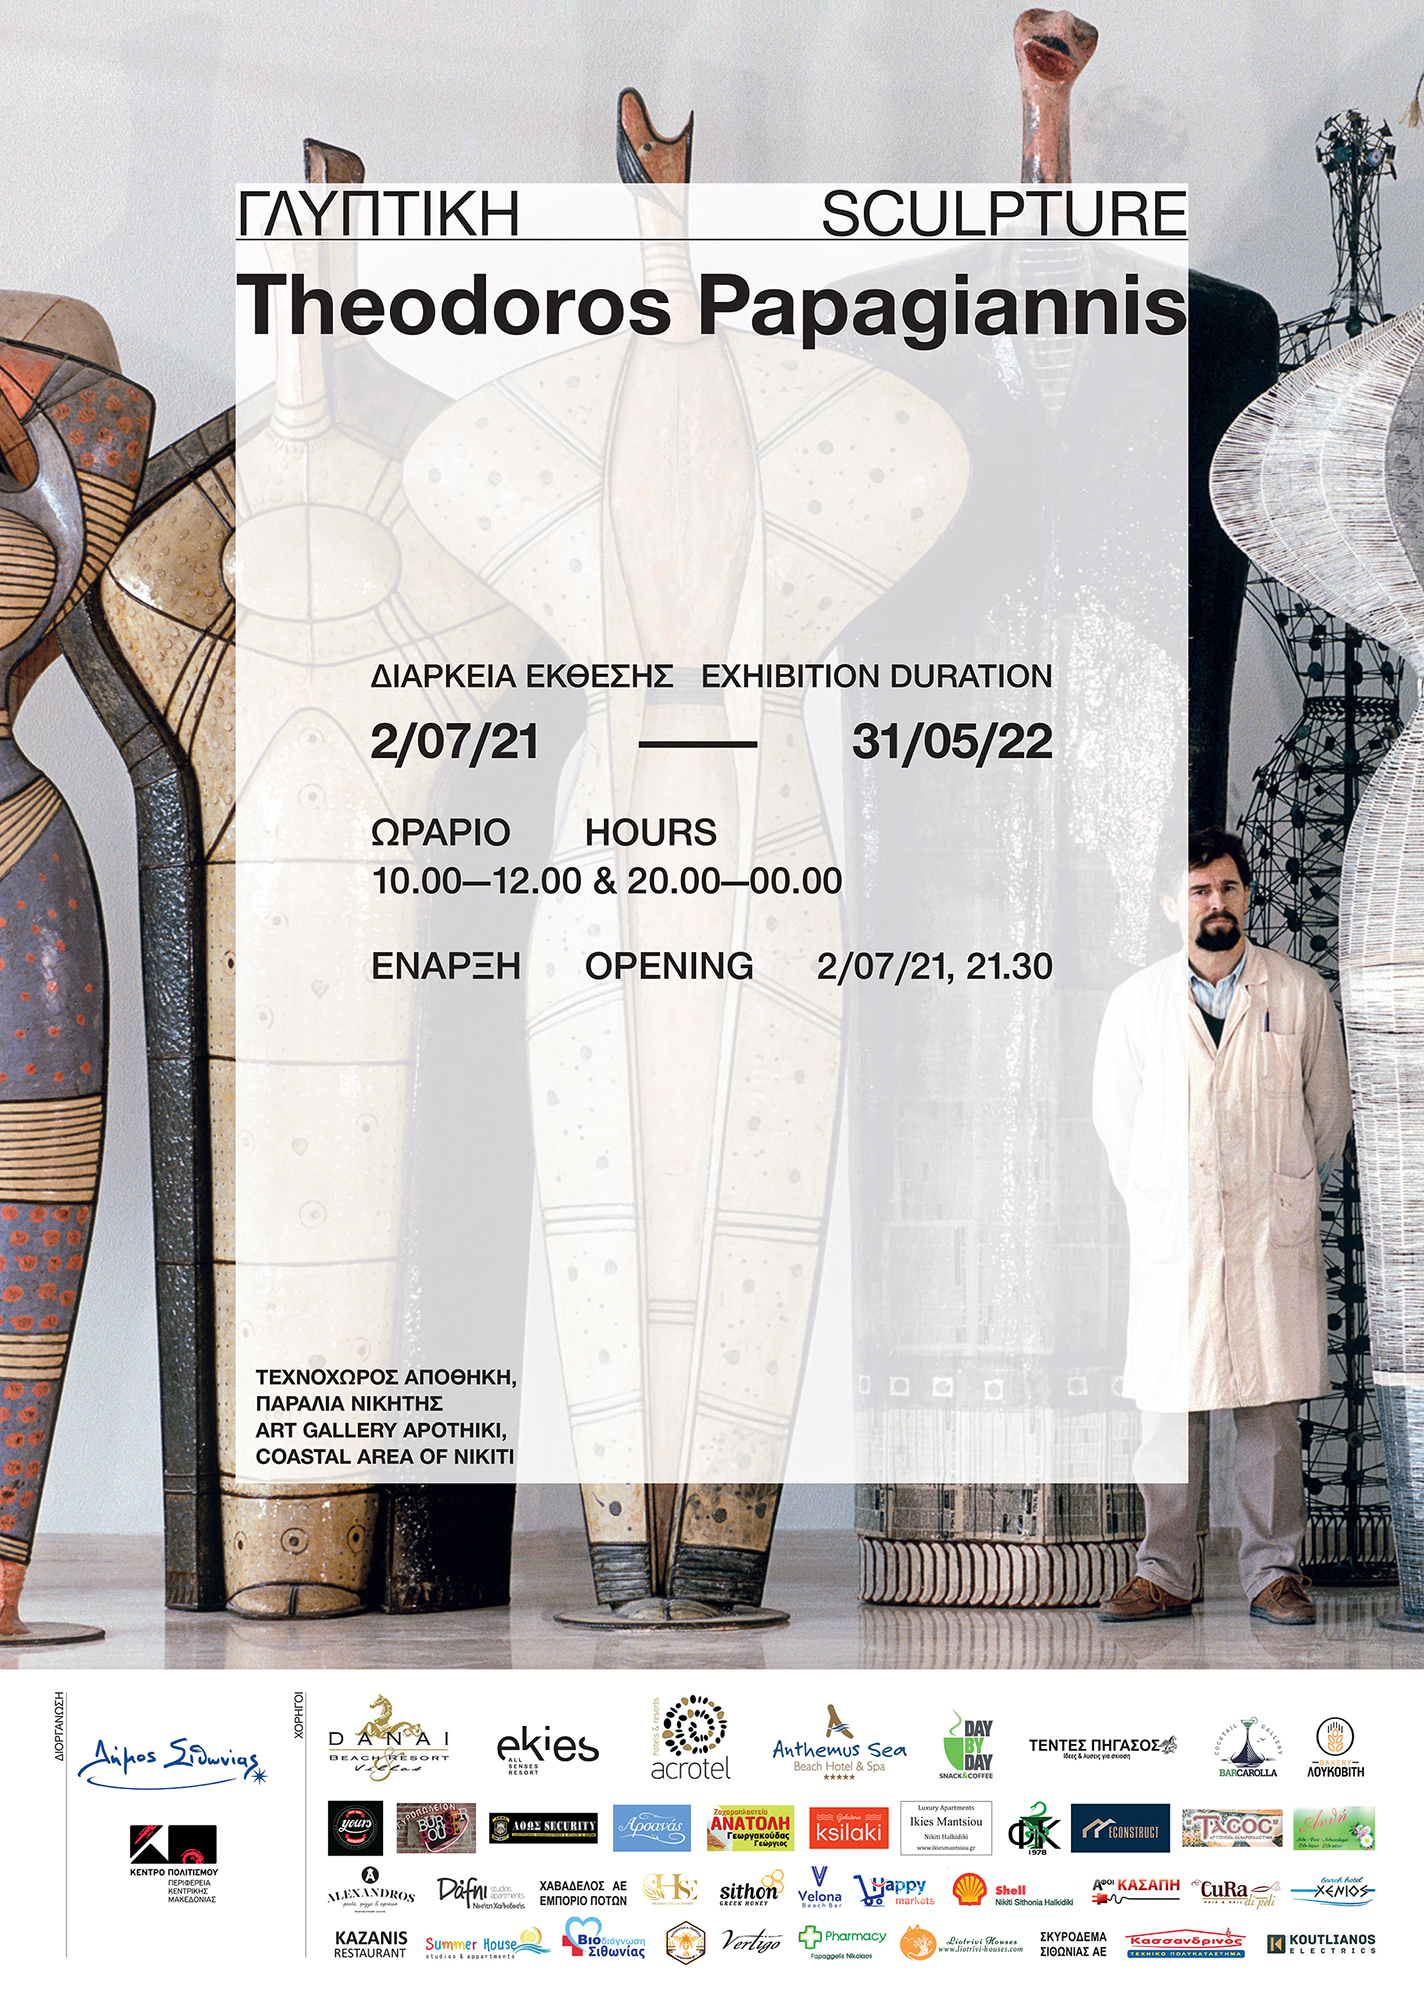 Sculpture exhibition by Theodoros Papagiannis